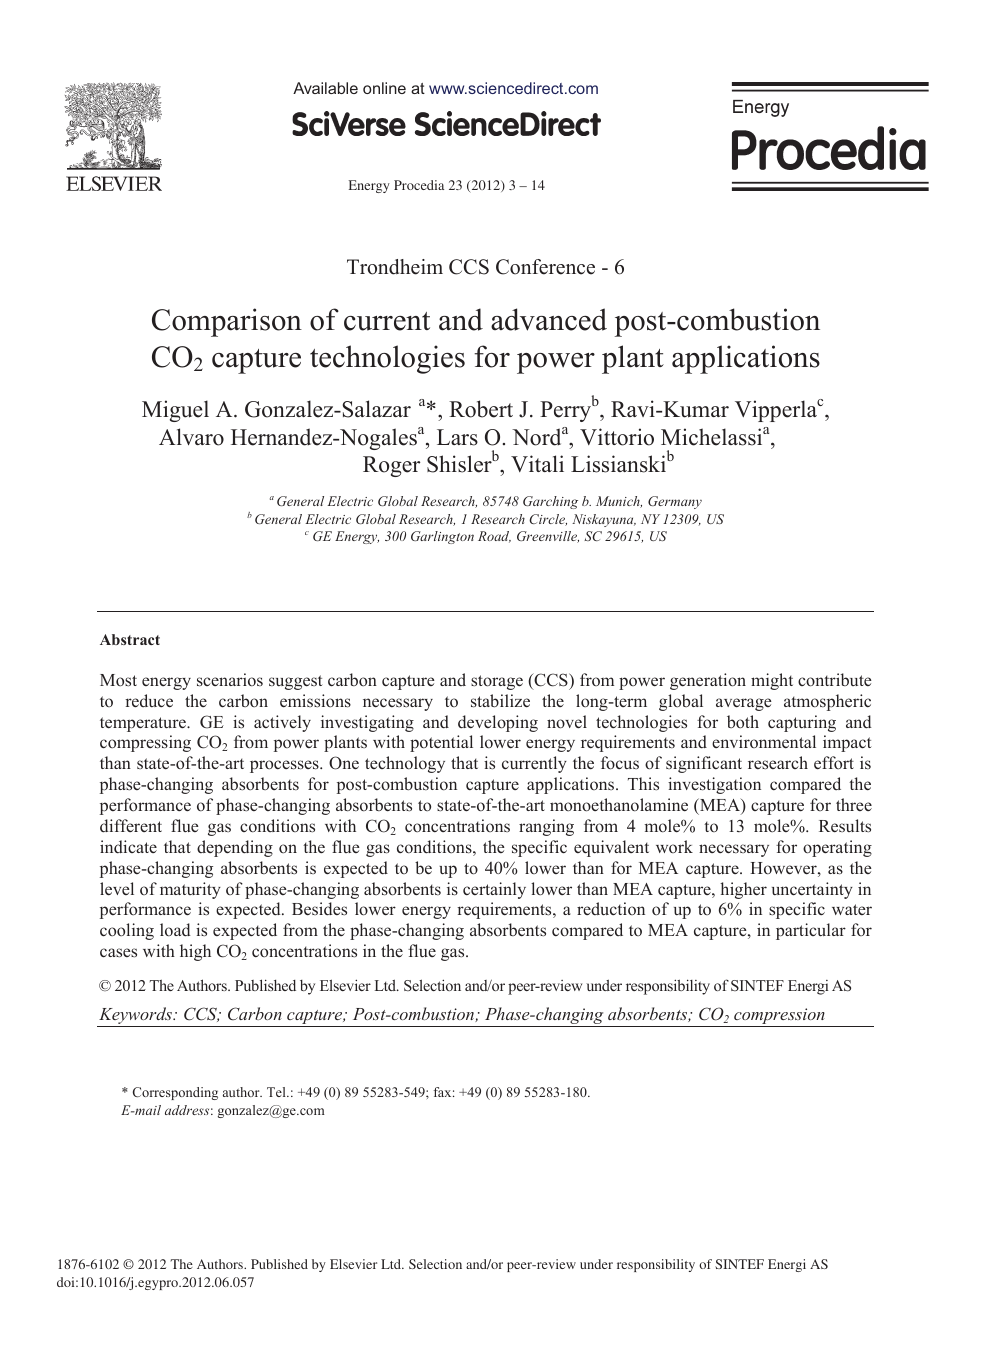 Comparison of Current and Advanced Post-Combustion CO2